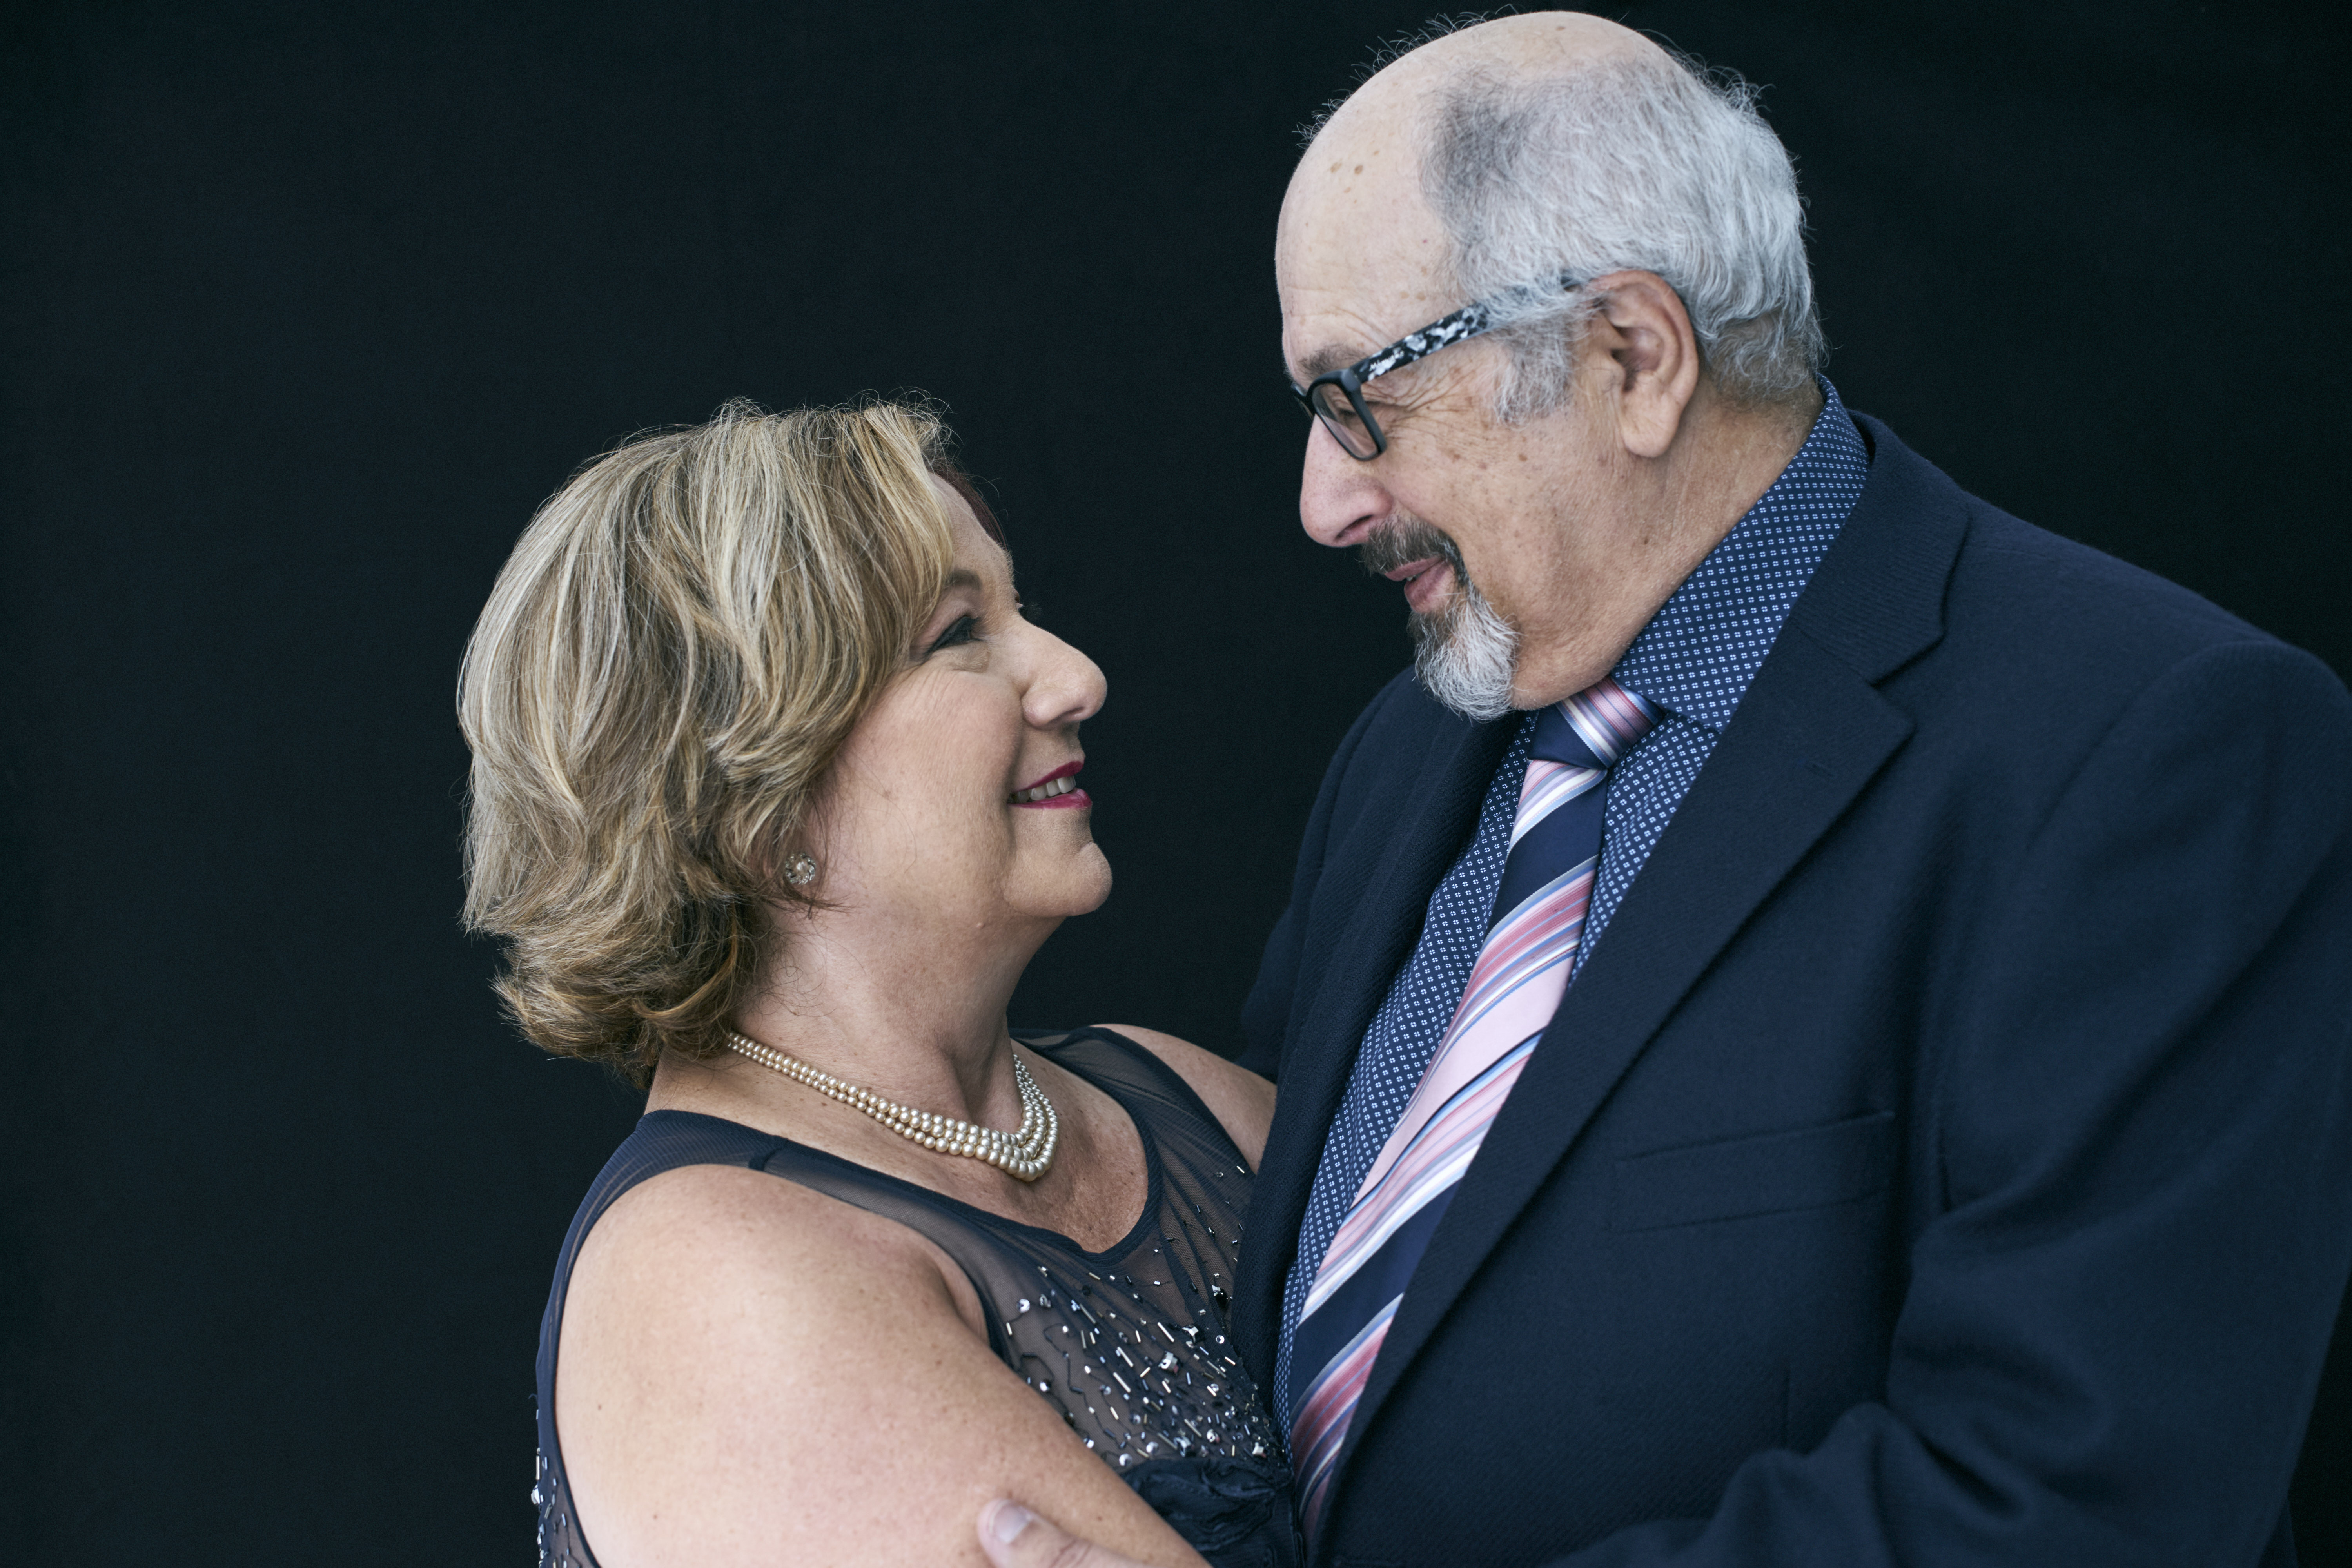 Studio portrait of an older couple both in smart clothing hugging and smiling at each other